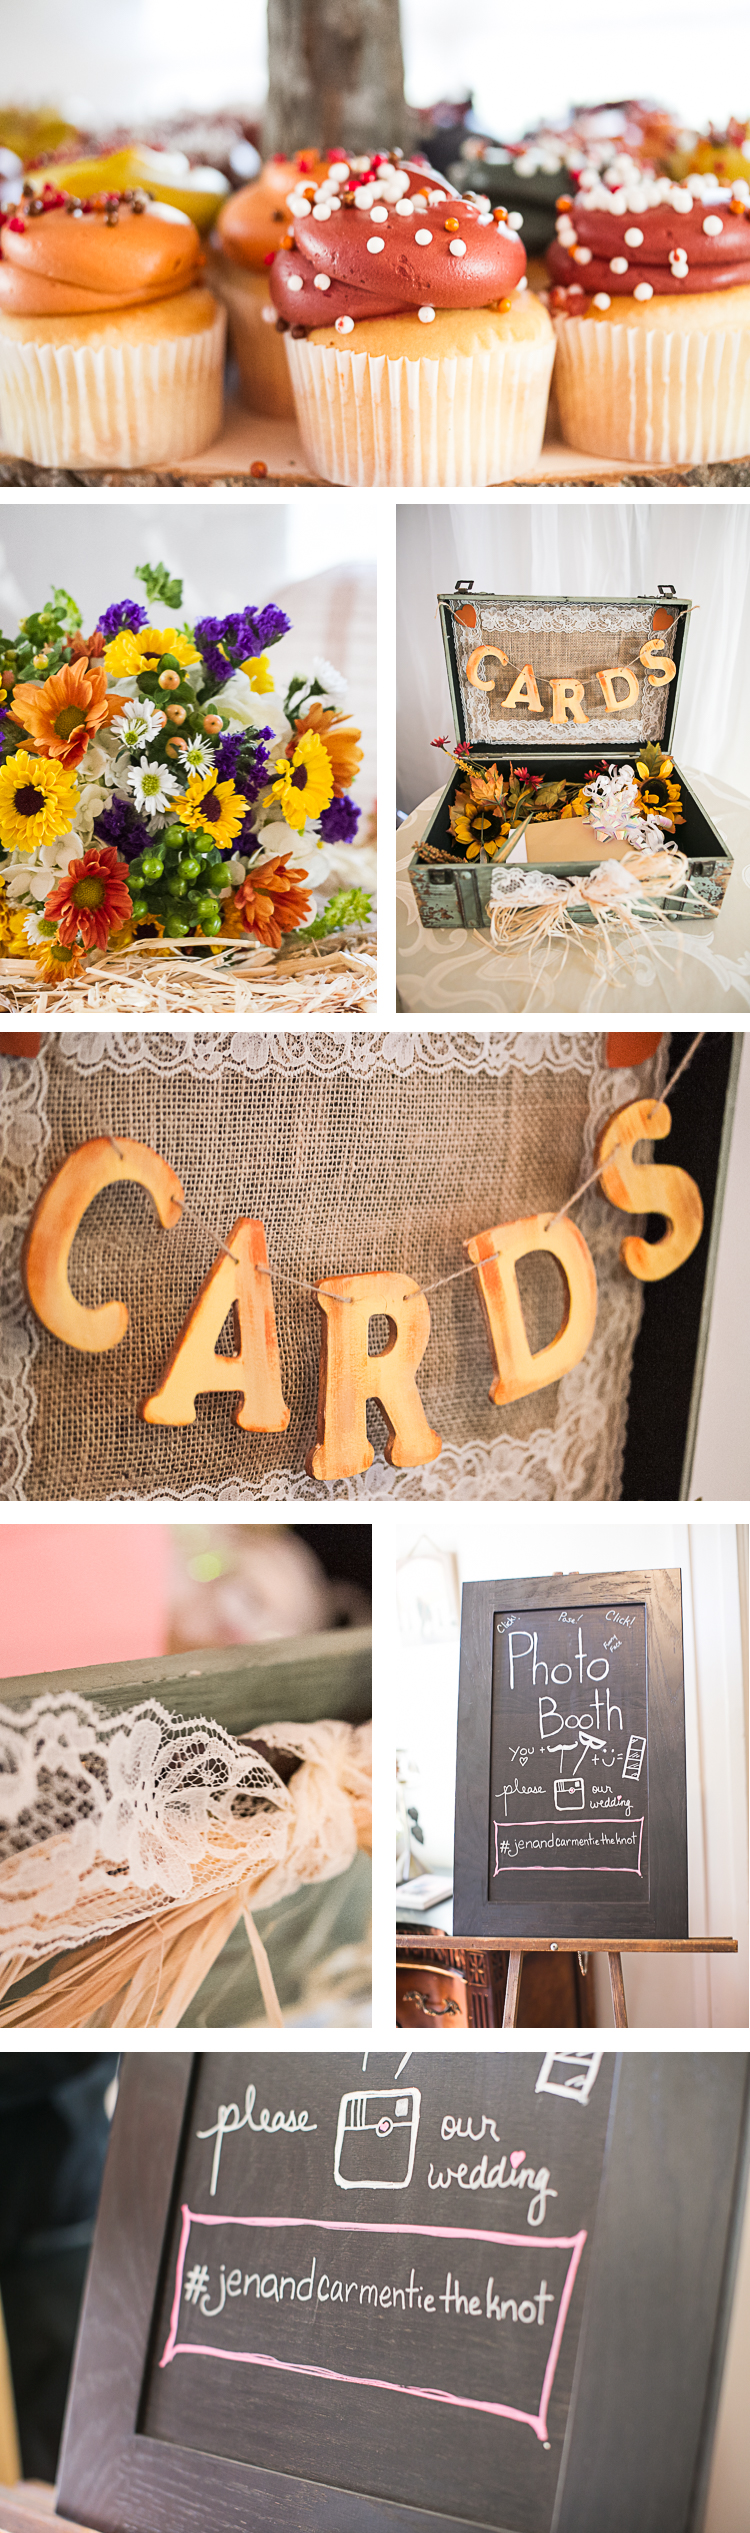 inn at millrace pond autumn rustic wedding 31_6